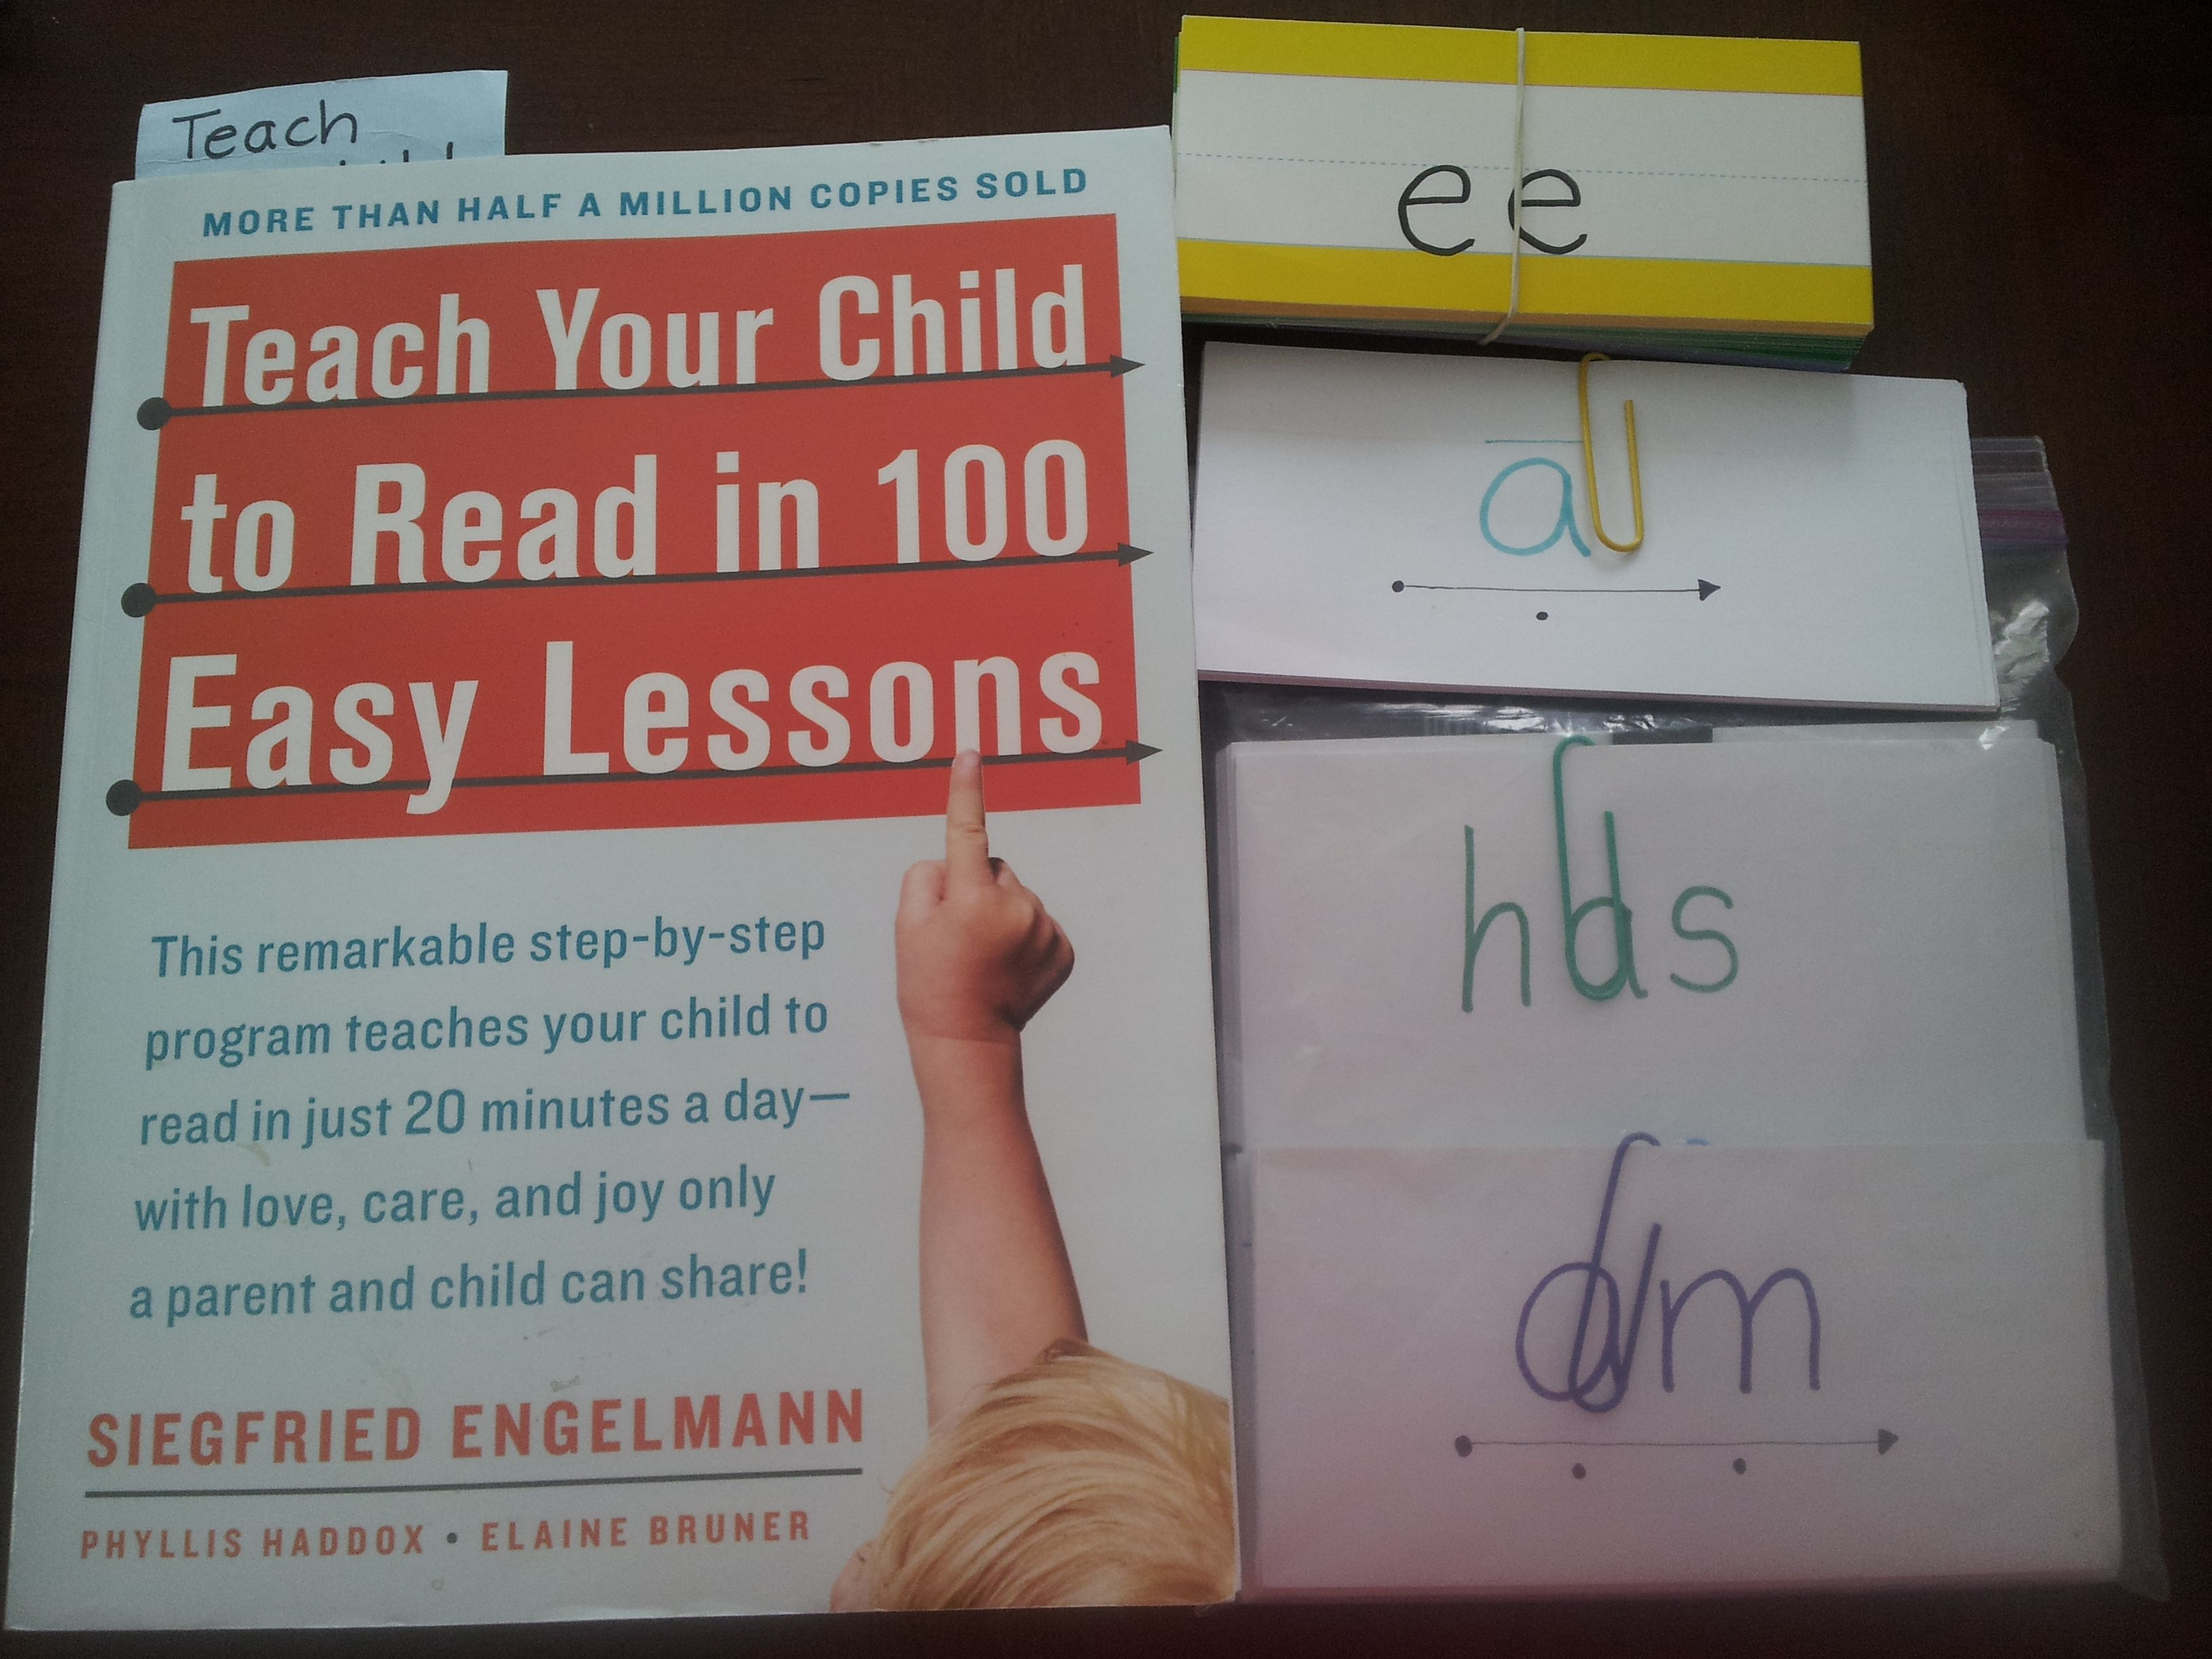 Teach Your Child To Read In 100 Easy Lessons By Siegrfried